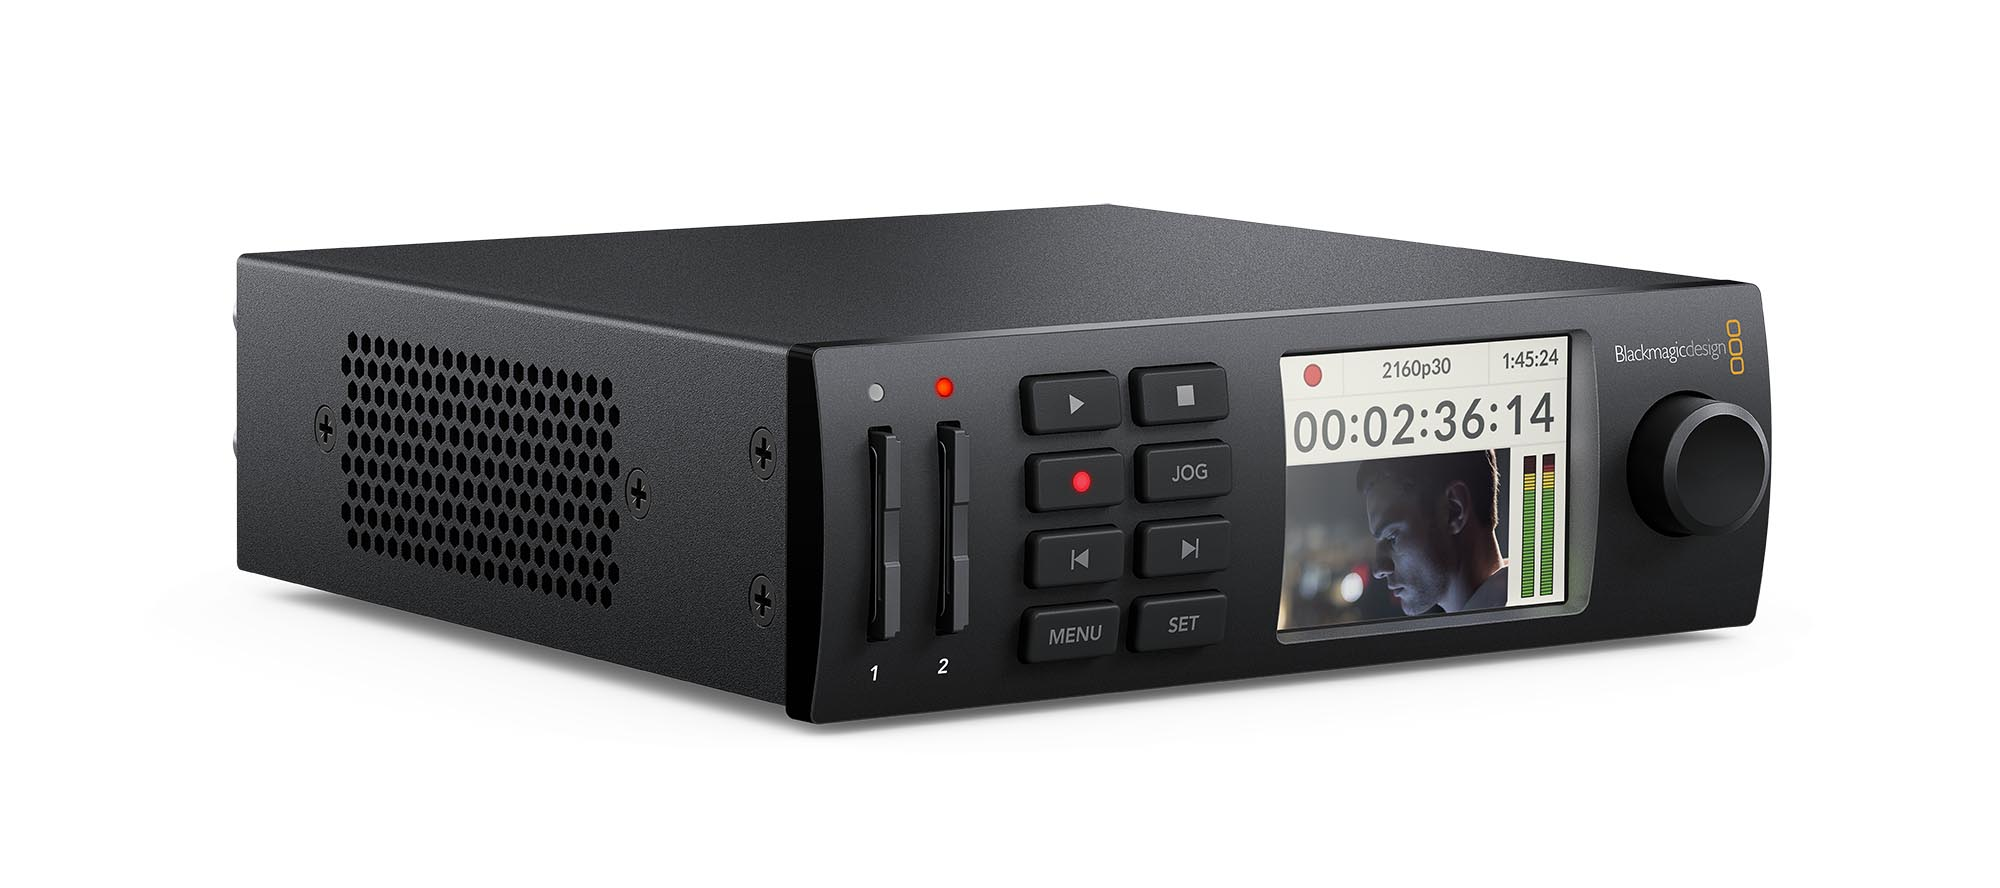 Blackmagic Announces New Atem Web Presenter And More By Brian Hallett Provideo Coalition